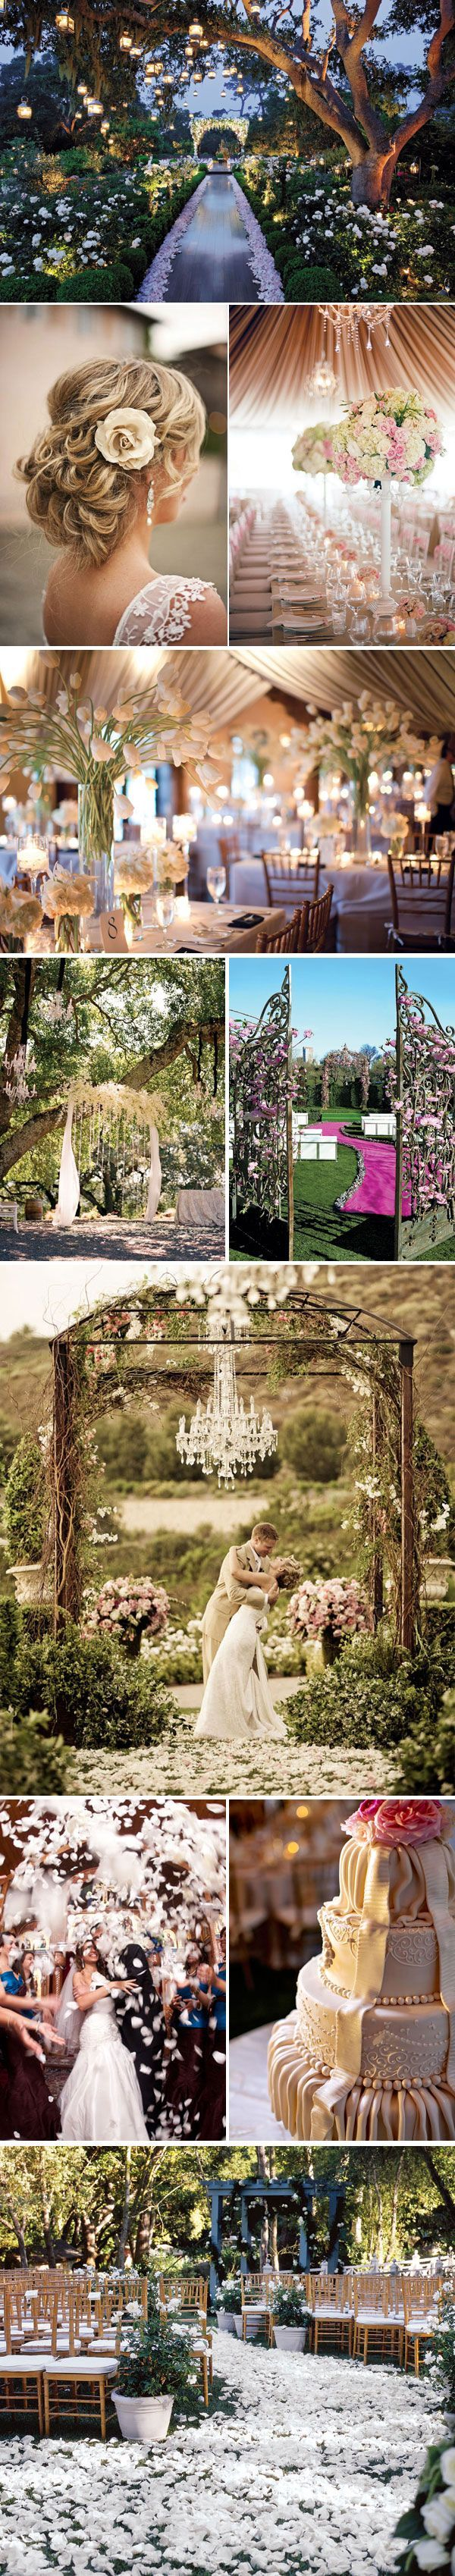 Not planning to get married but if I was going to ...it might look a little like this ... #enchantedforest#glamwedding one day.....